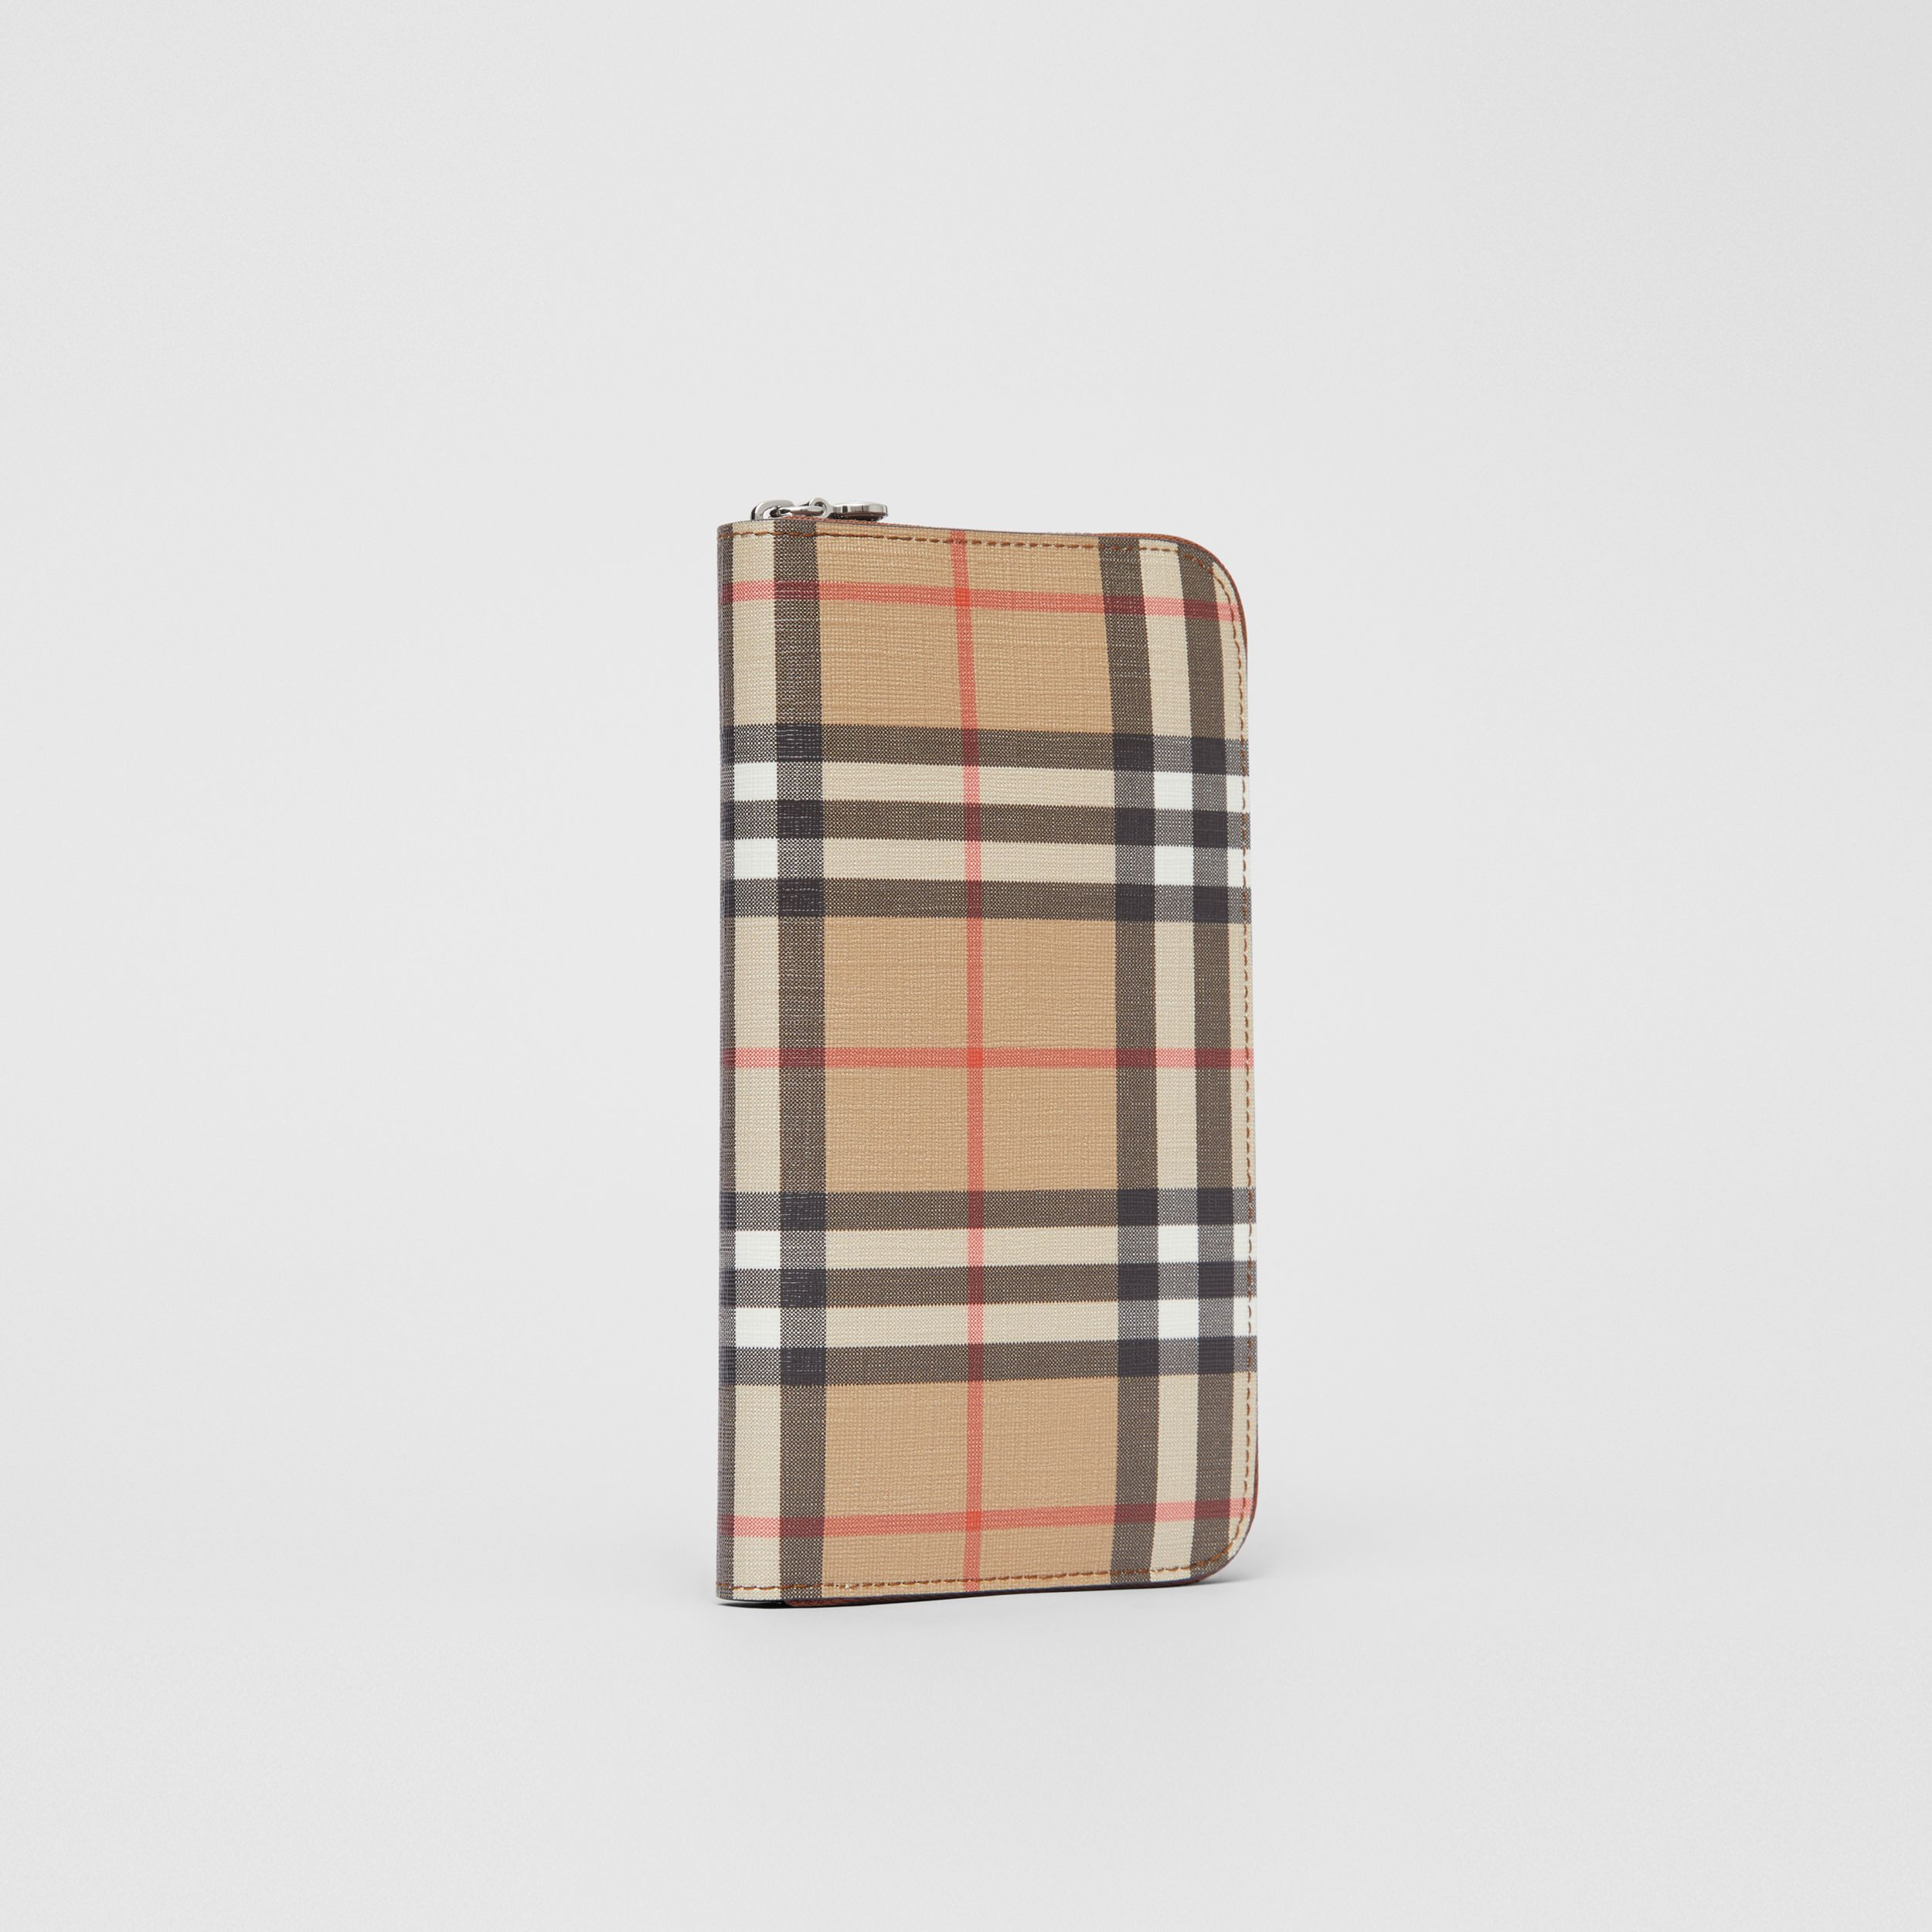 Vintage Check E-canvas Ziparound Wallet in Malt Brown - Women | Burberry - 4